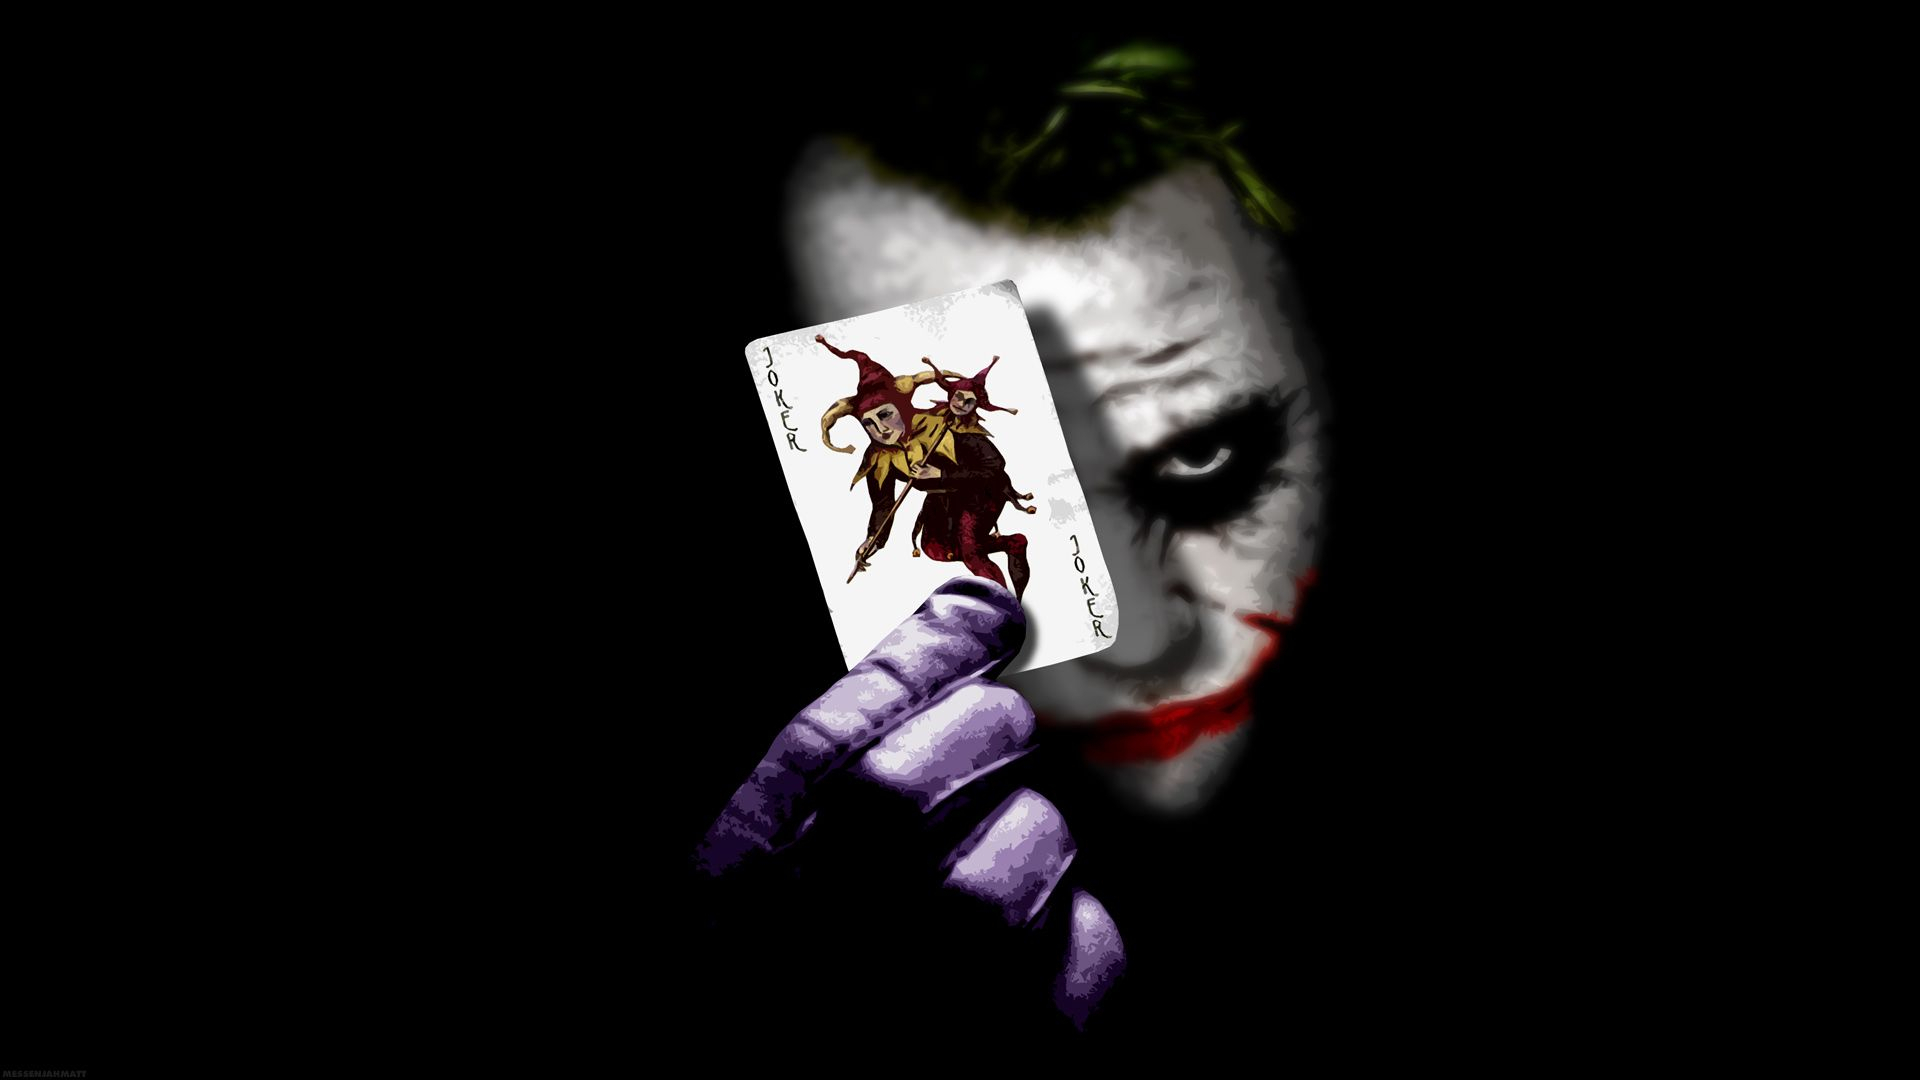 hd joker hd wallpapers 1080p with hd windows wallpaper full hd with